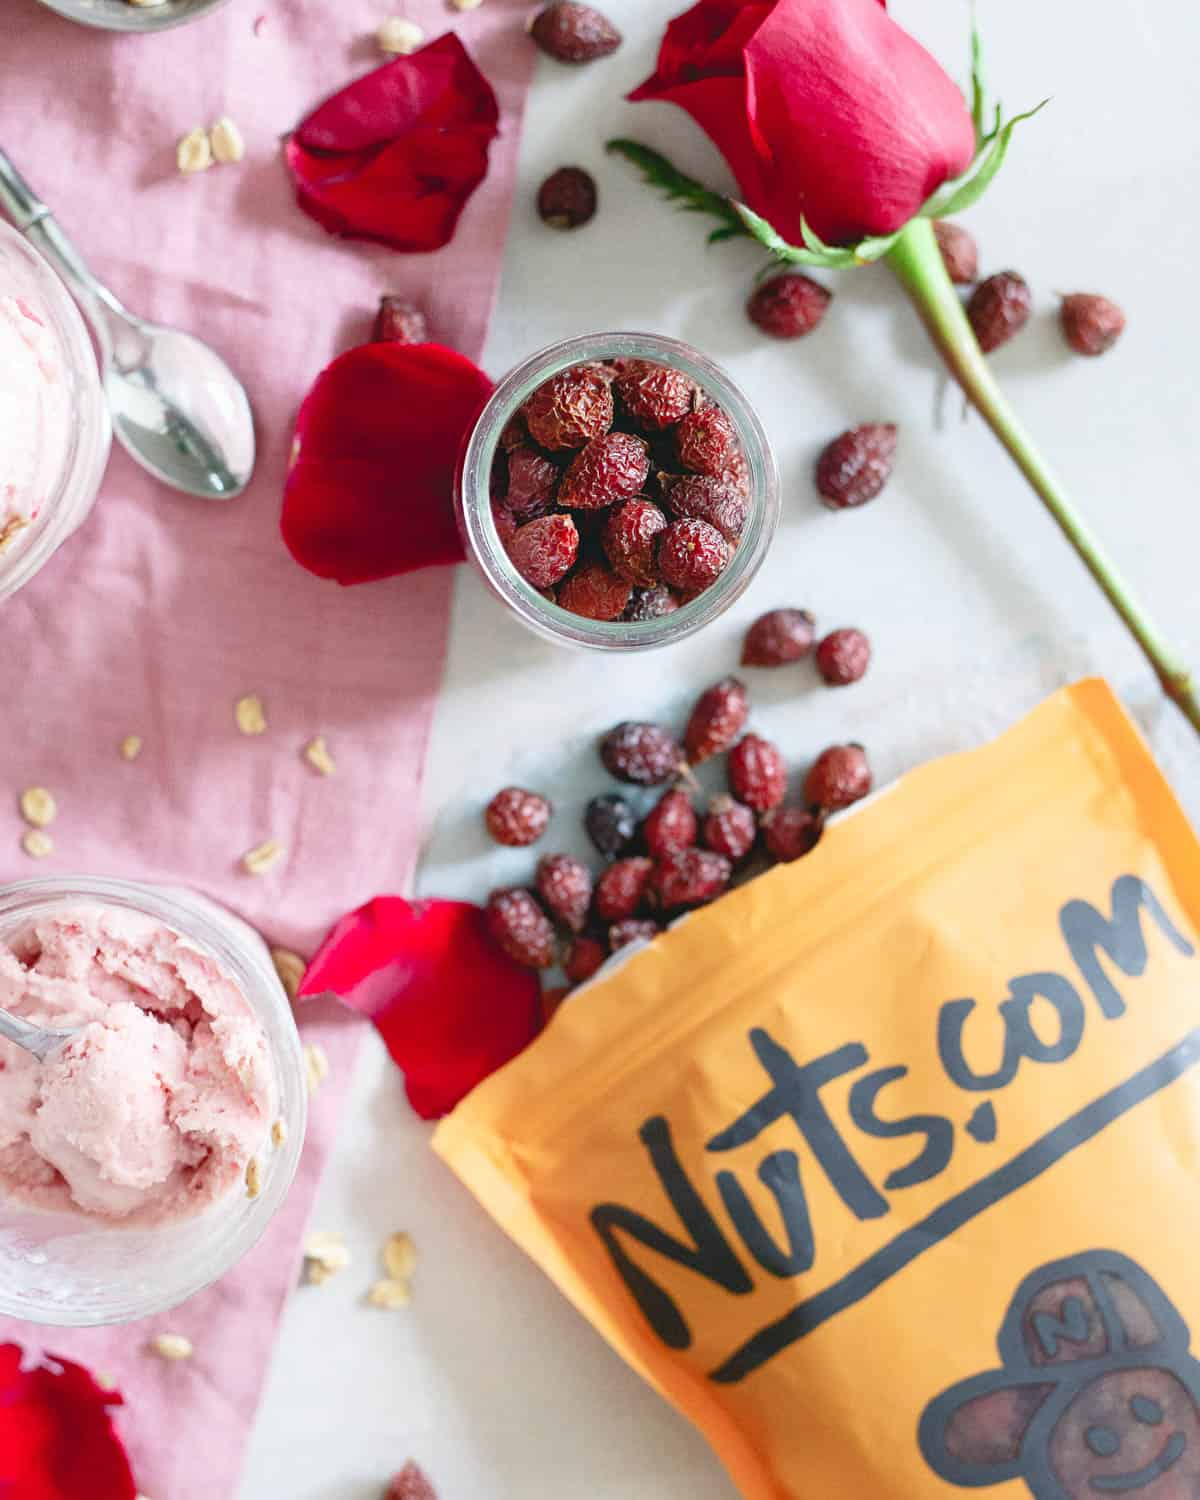 Rosehips are infused in milk and honey to give this ice cream a subtle floral and citrus flavor combined with sweet spring strawberries.